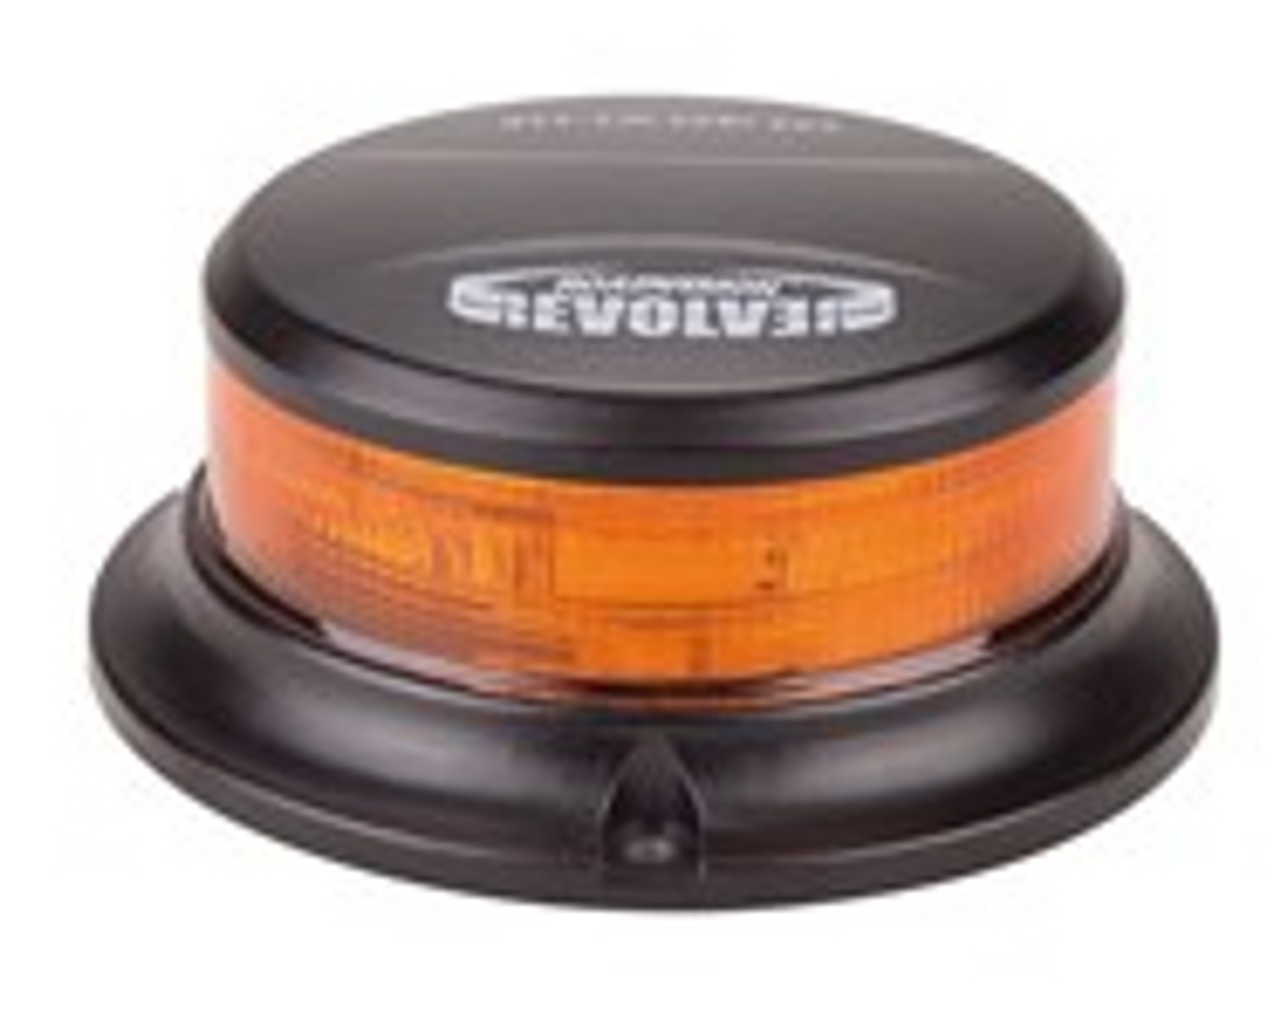 RB112Y - Low Profile, Amber Safety Rotation and Strobe Beacon. Fixed Mount. RB112Y. Class 1 Certified . Roadvision. Ultimate LED.